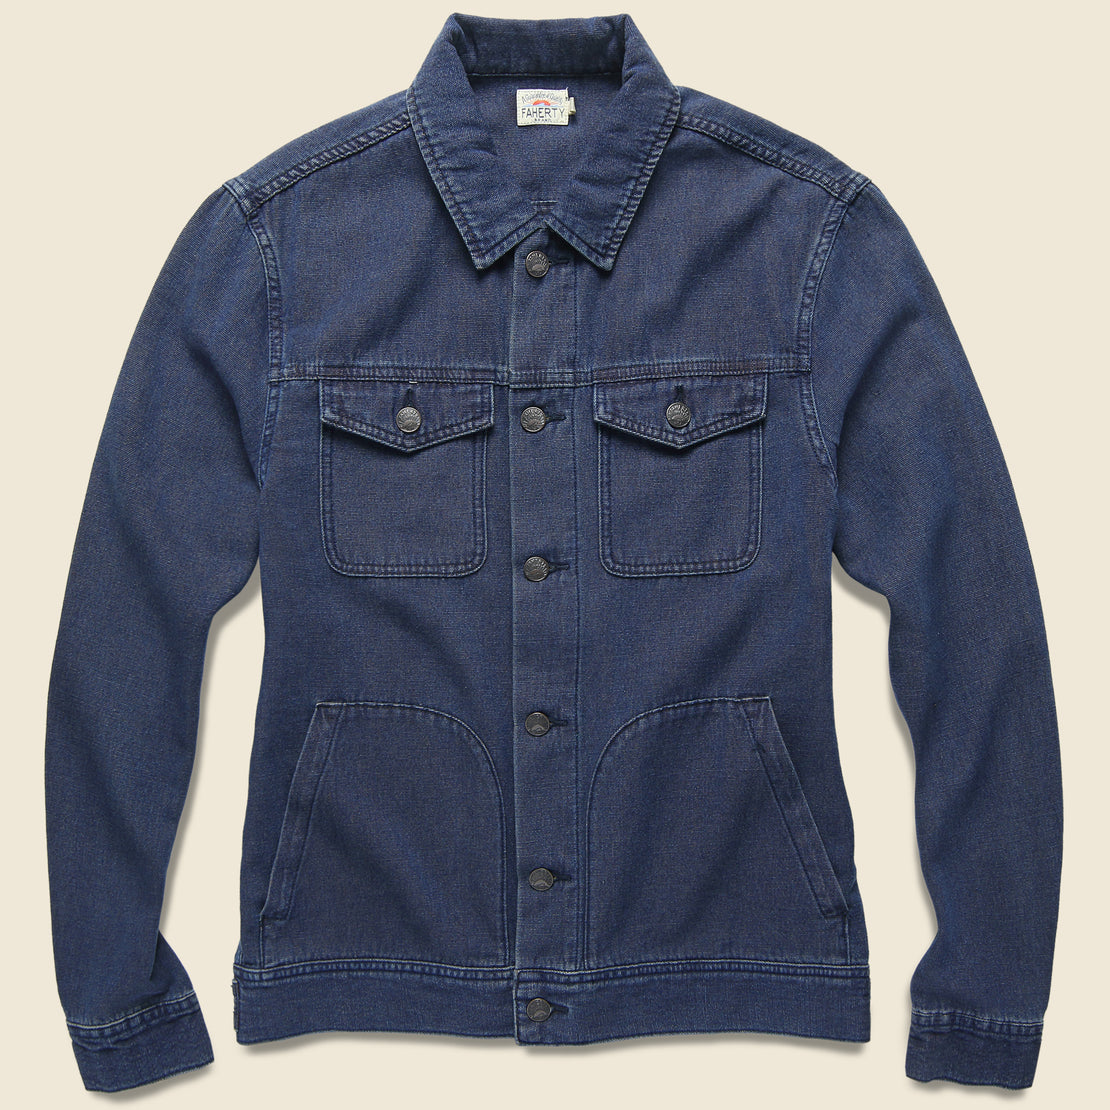 Faherty Route 80 Jacket - Indigo